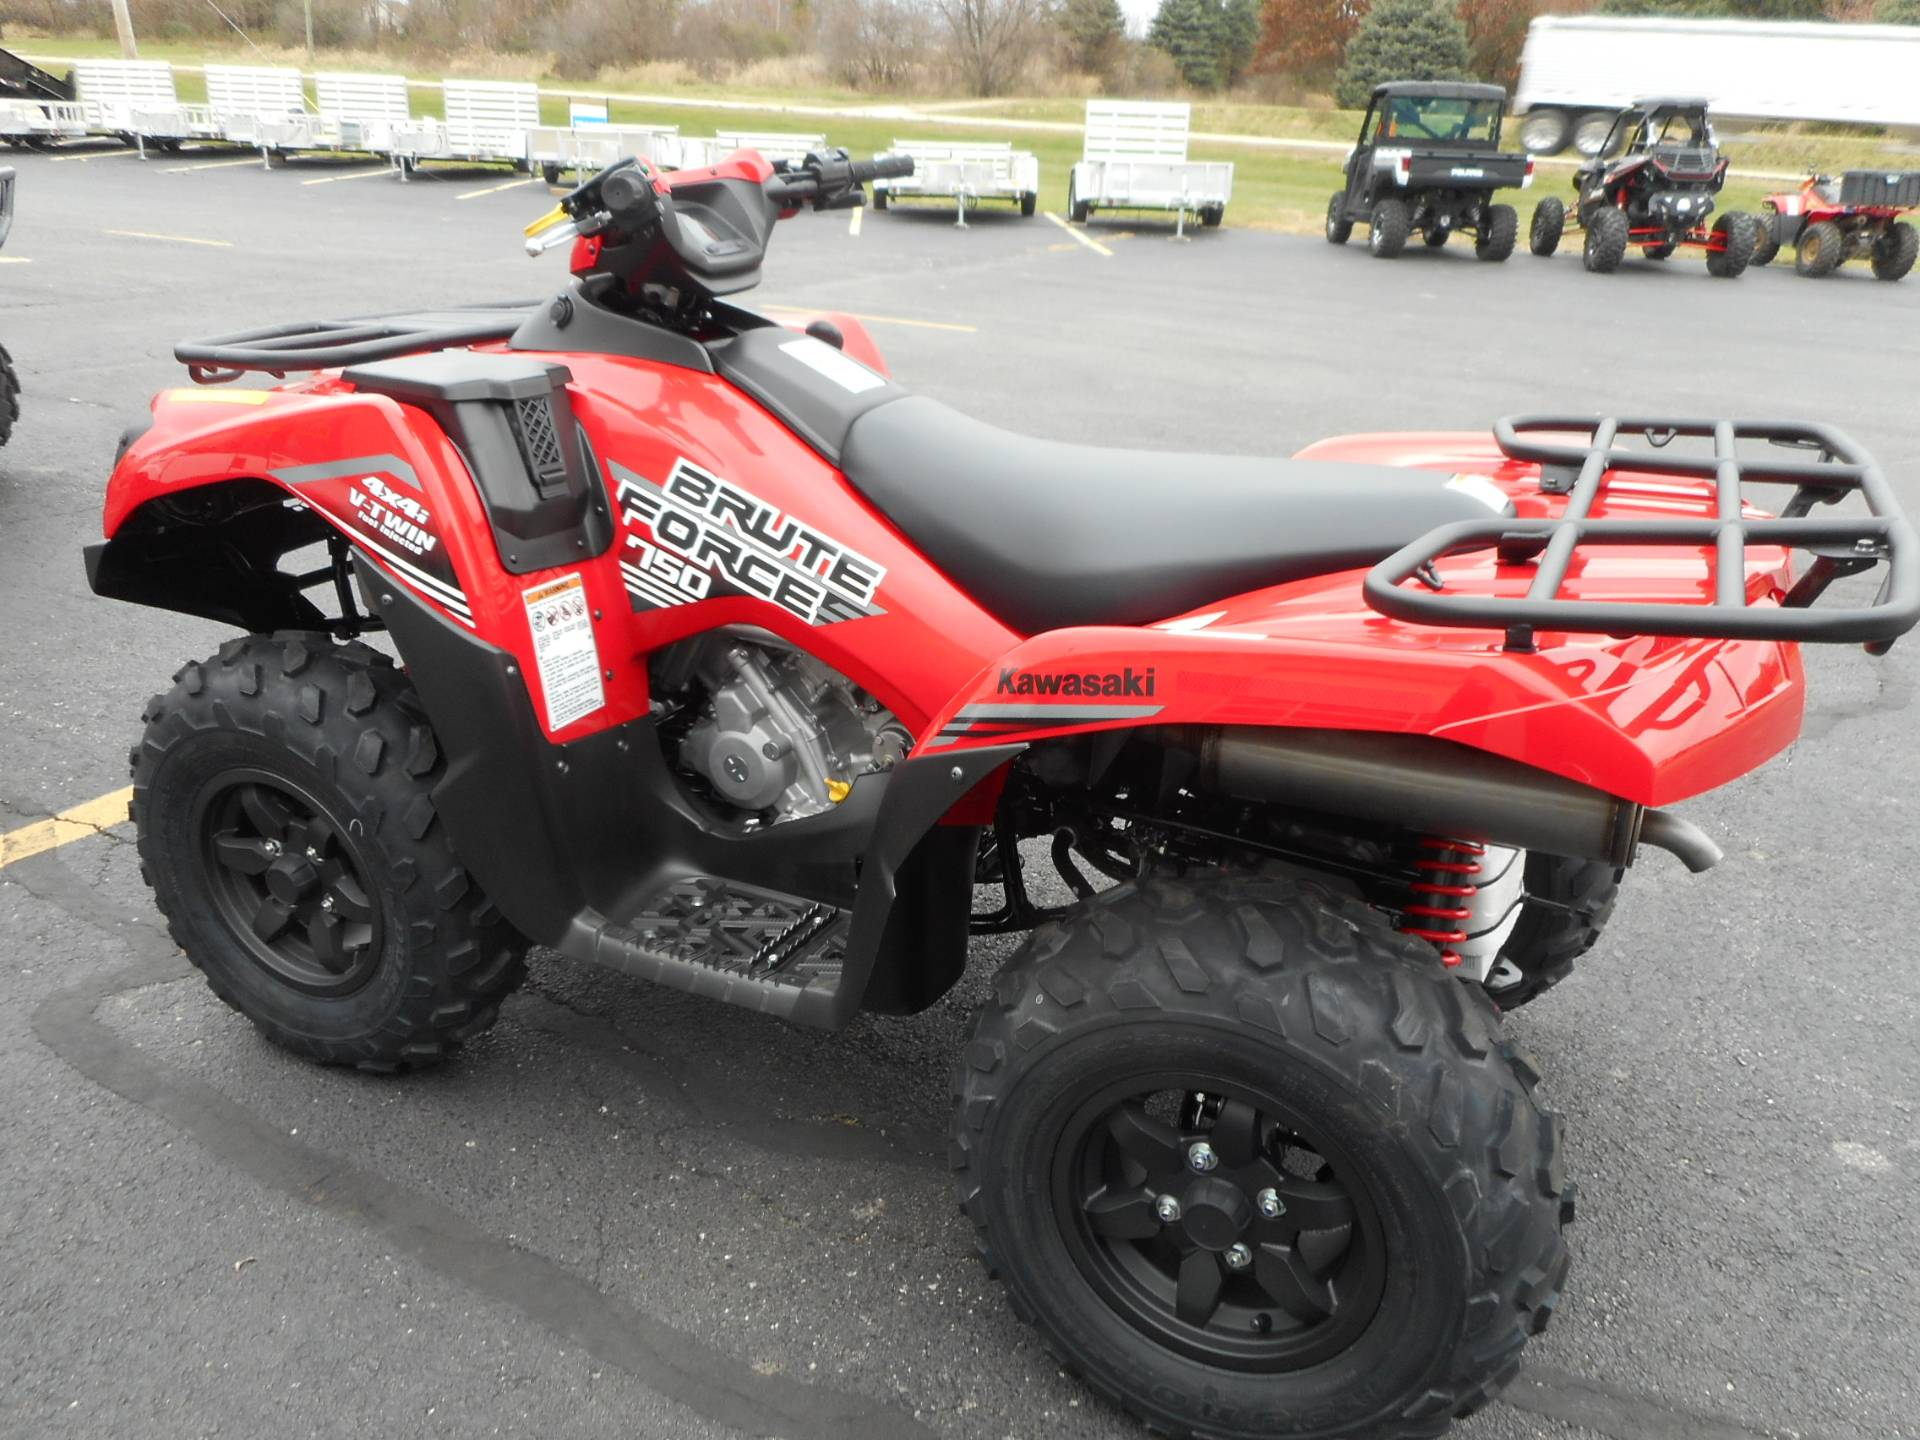 2020 Kawasaki Brute Force 750 4x4i in Belvidere, Illinois - Photo 6